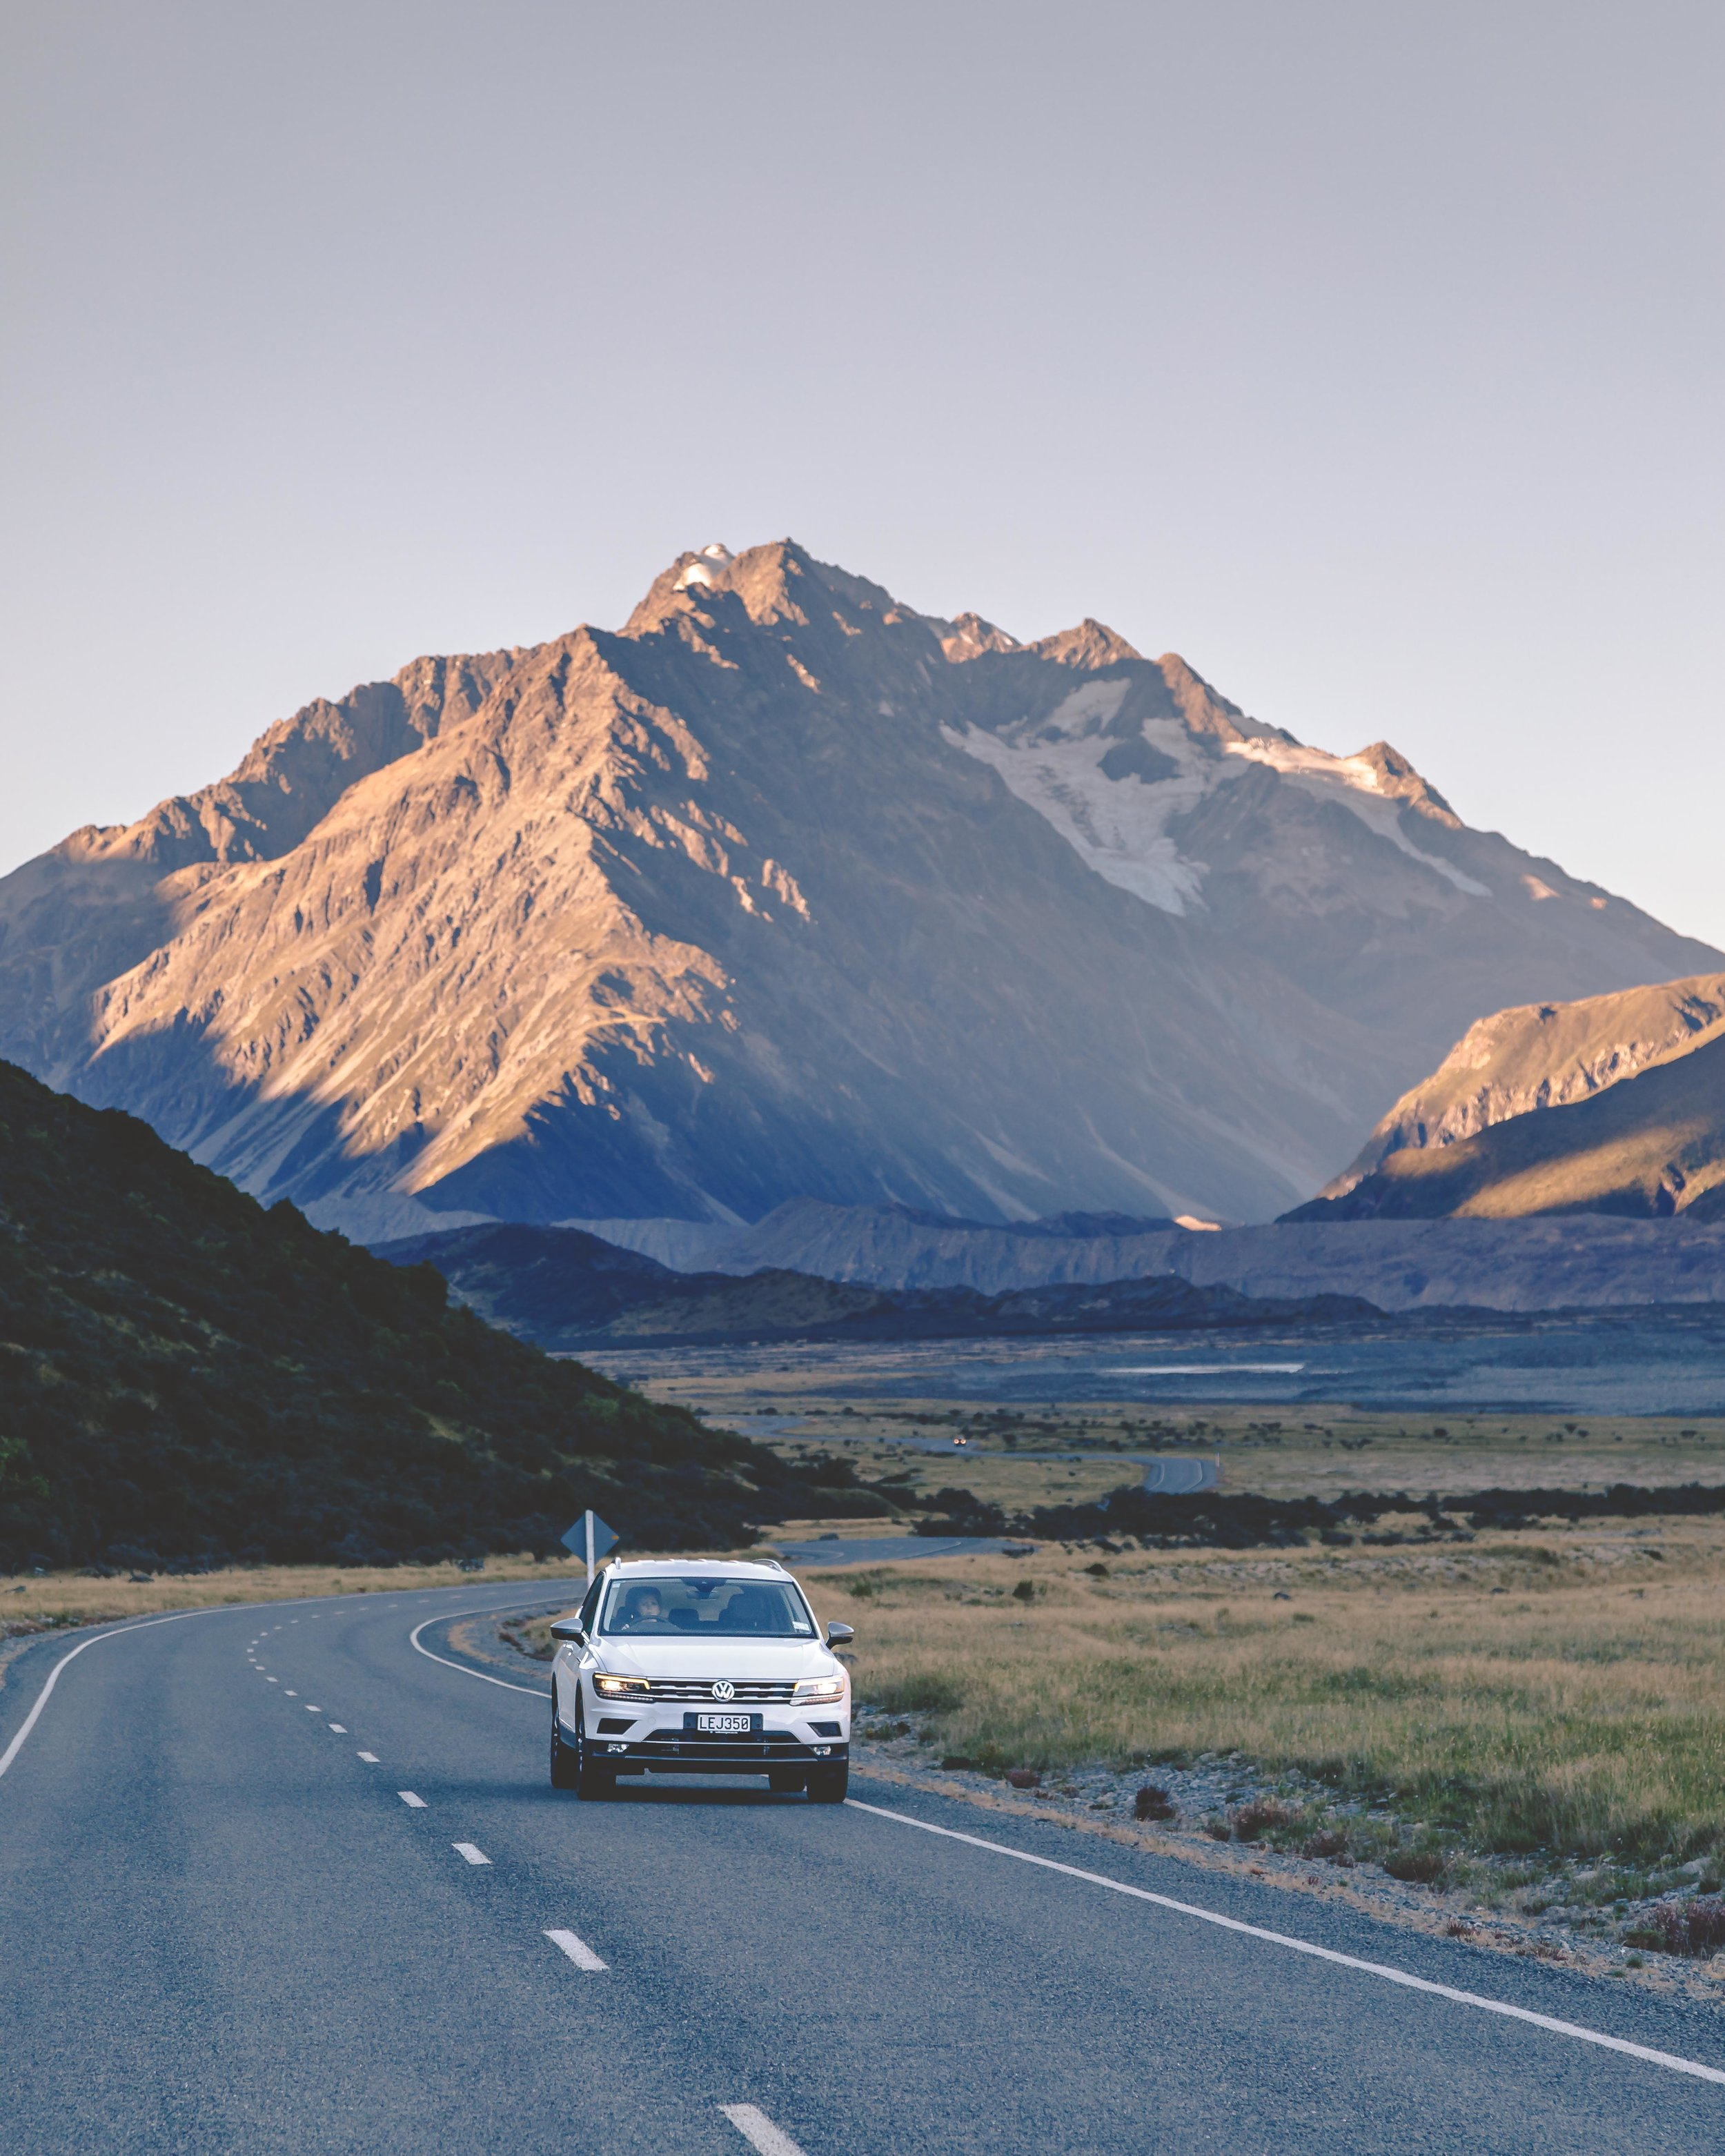 2 week New Zealand South Island Itinerary: Mount Cook